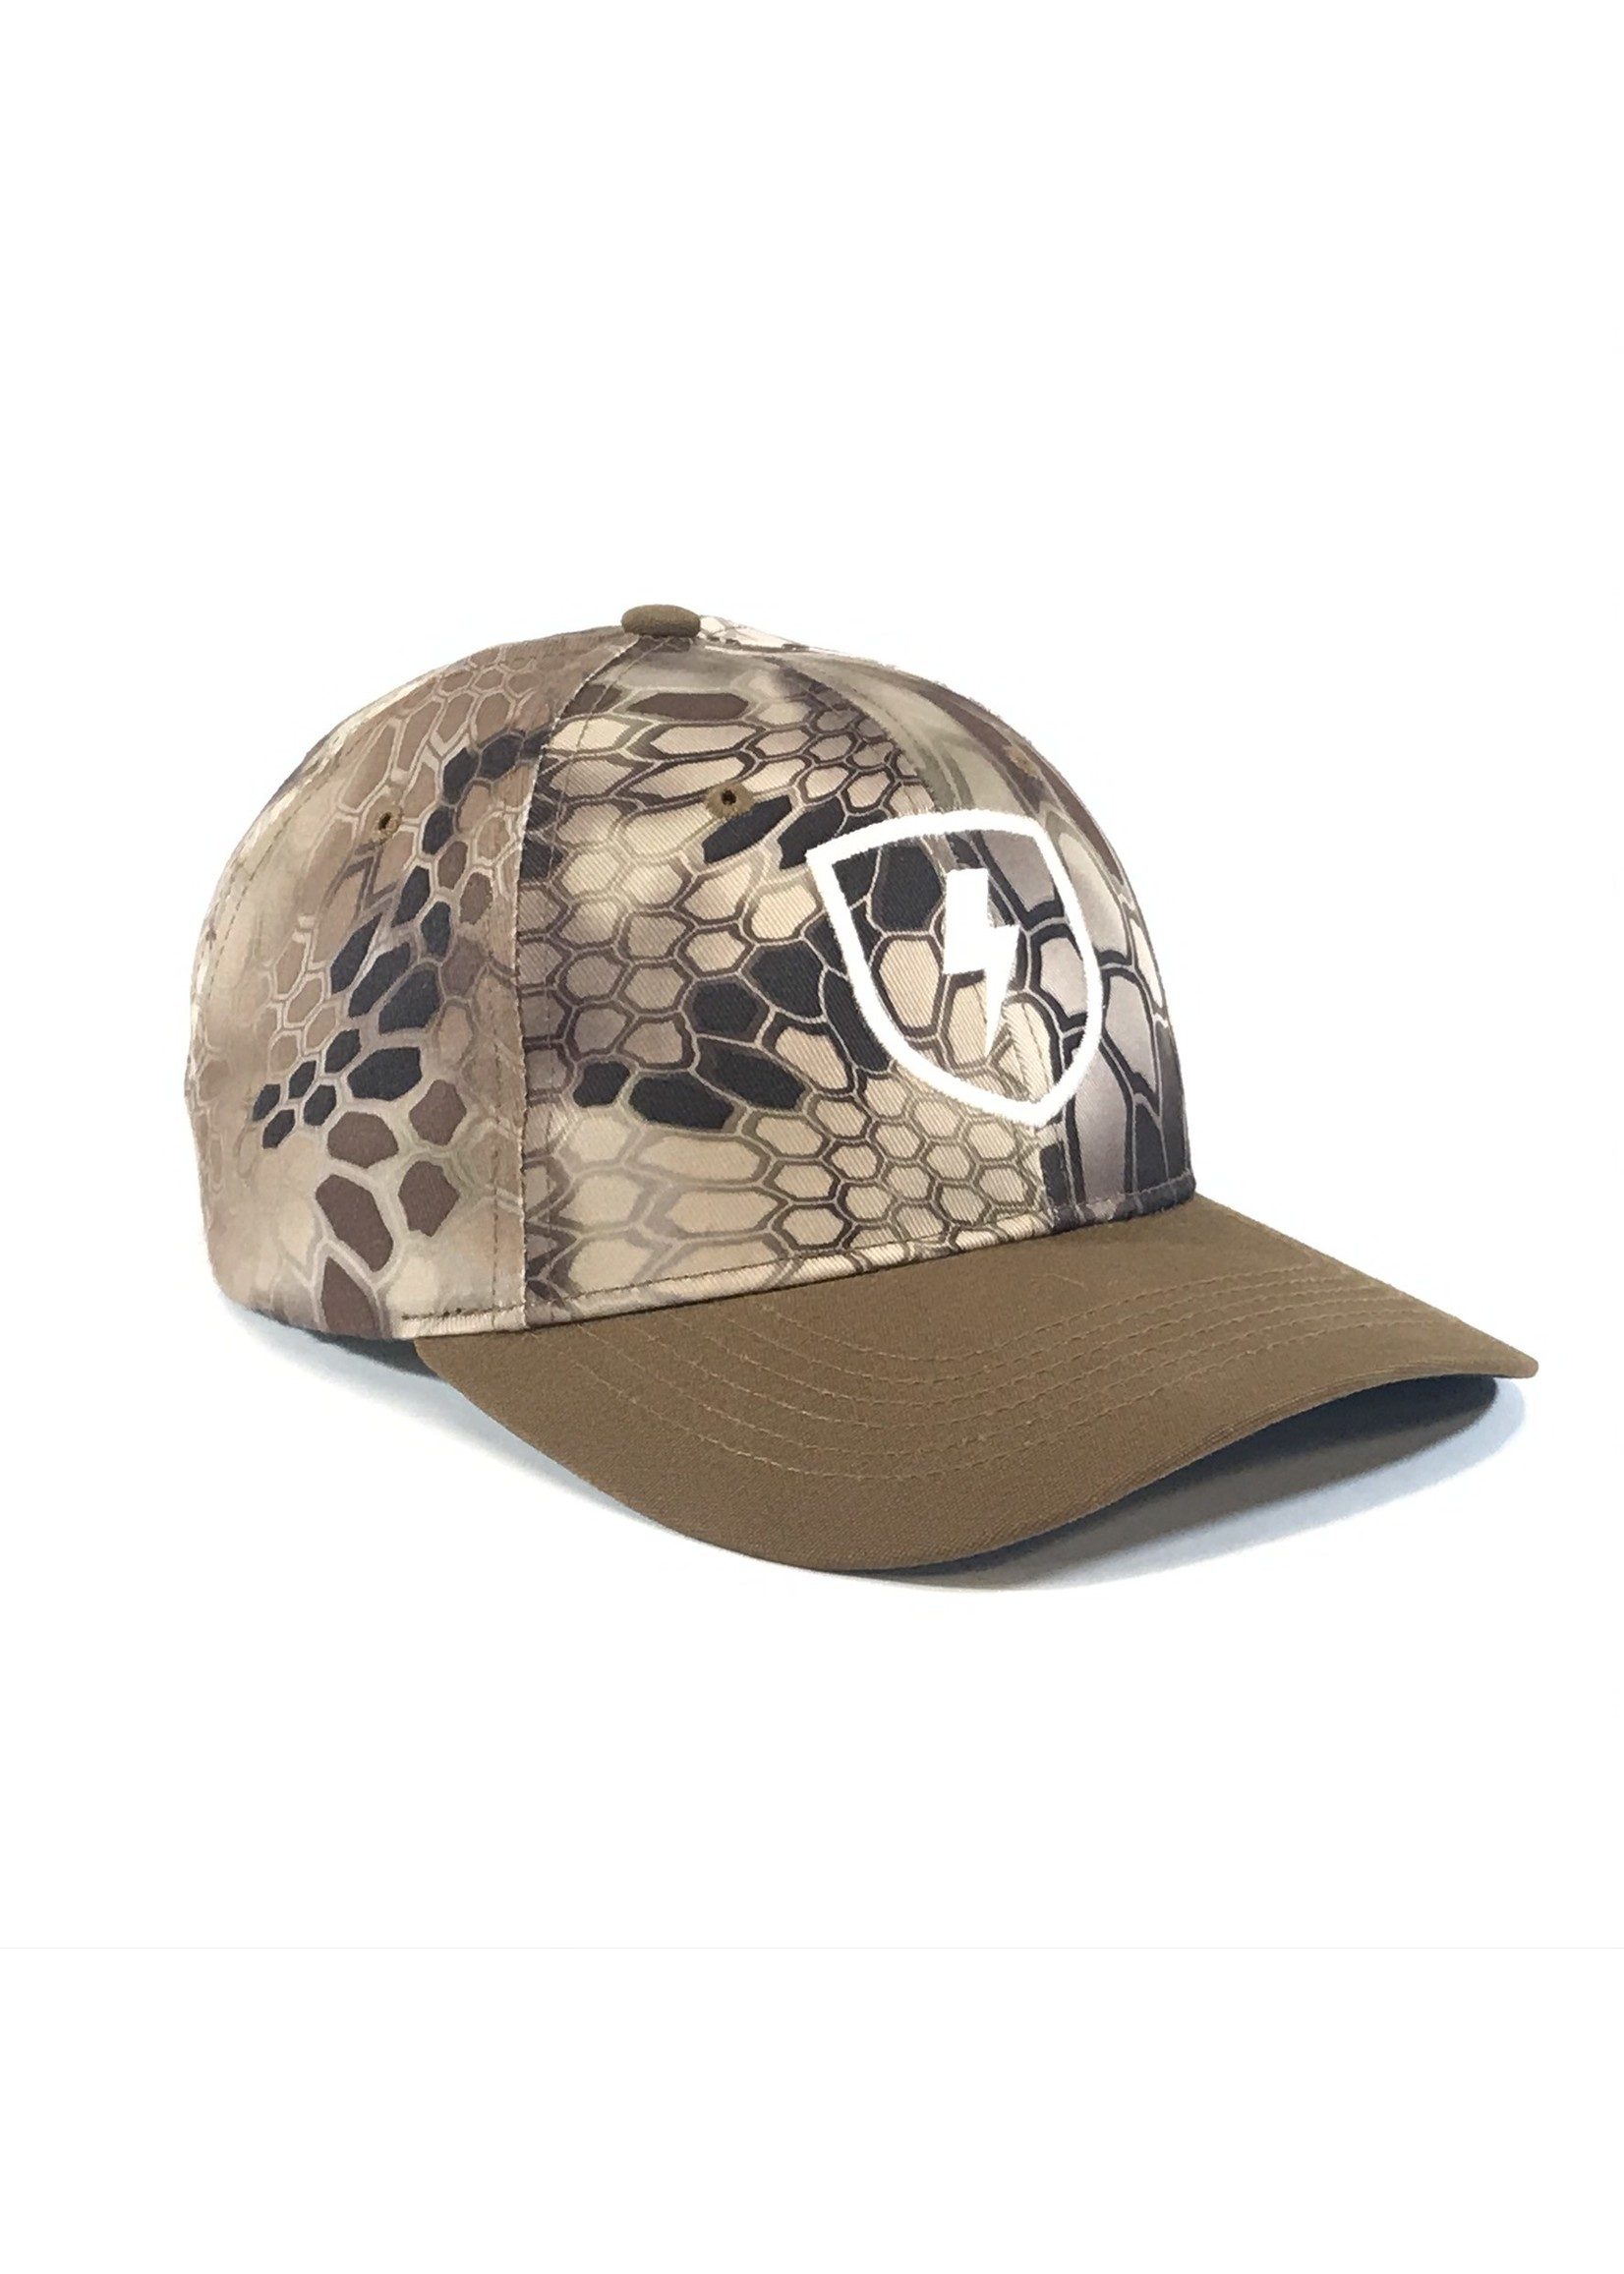 Defender Outdoors Camo Duck Cloth Hat